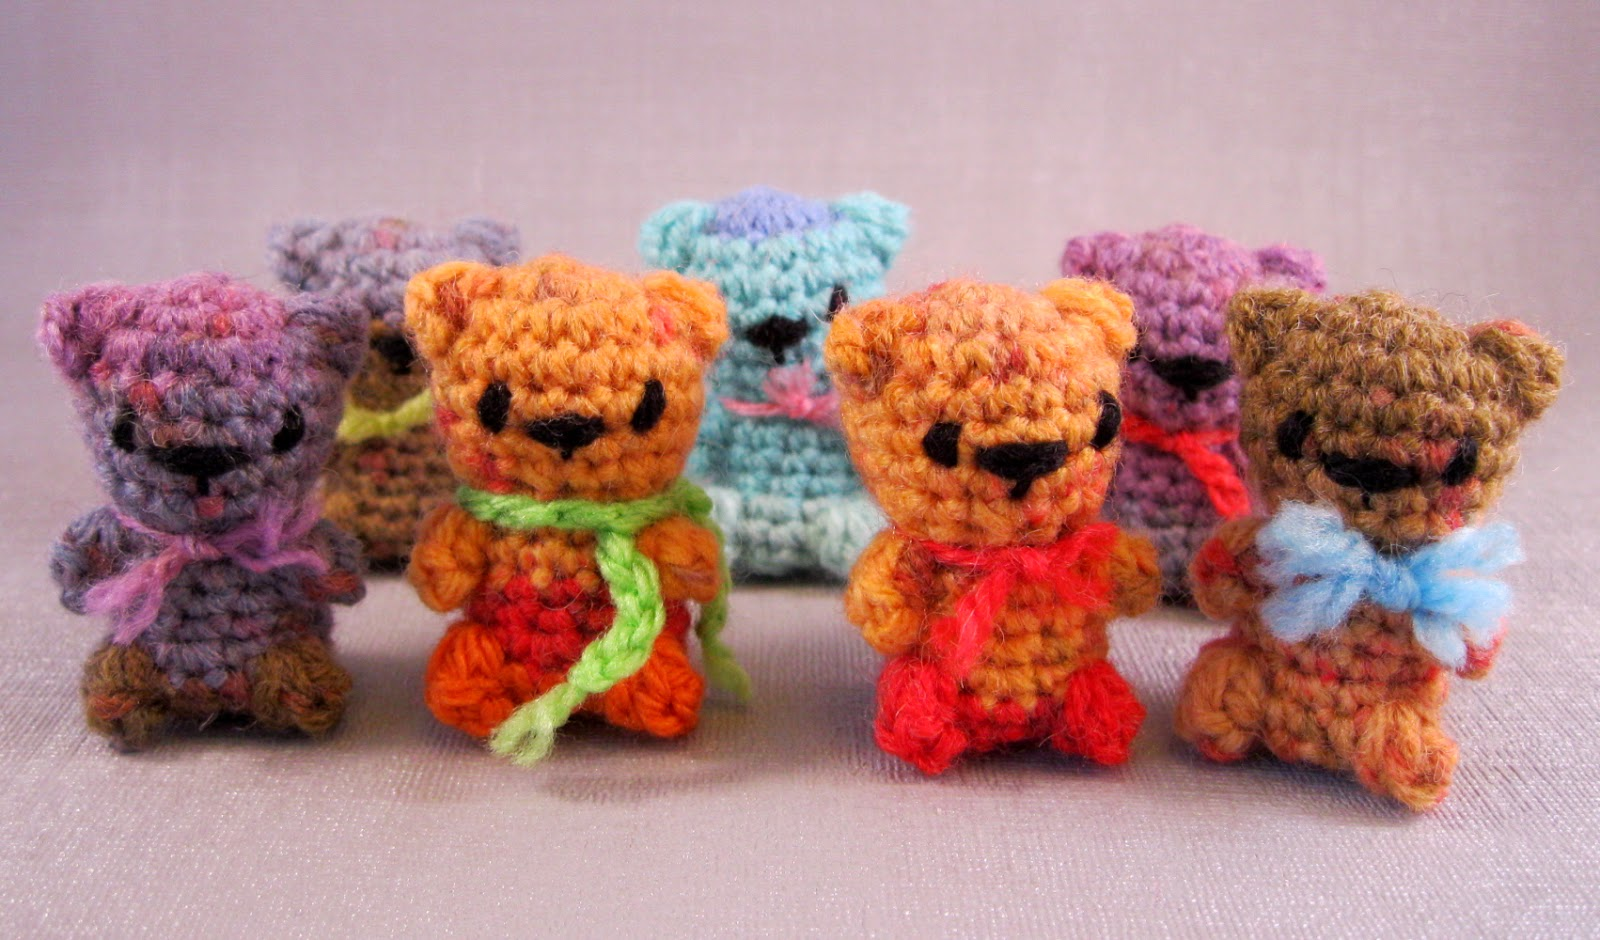 Tiny teddy bear crochet pattern | Amiguroom Toys | 940x1600